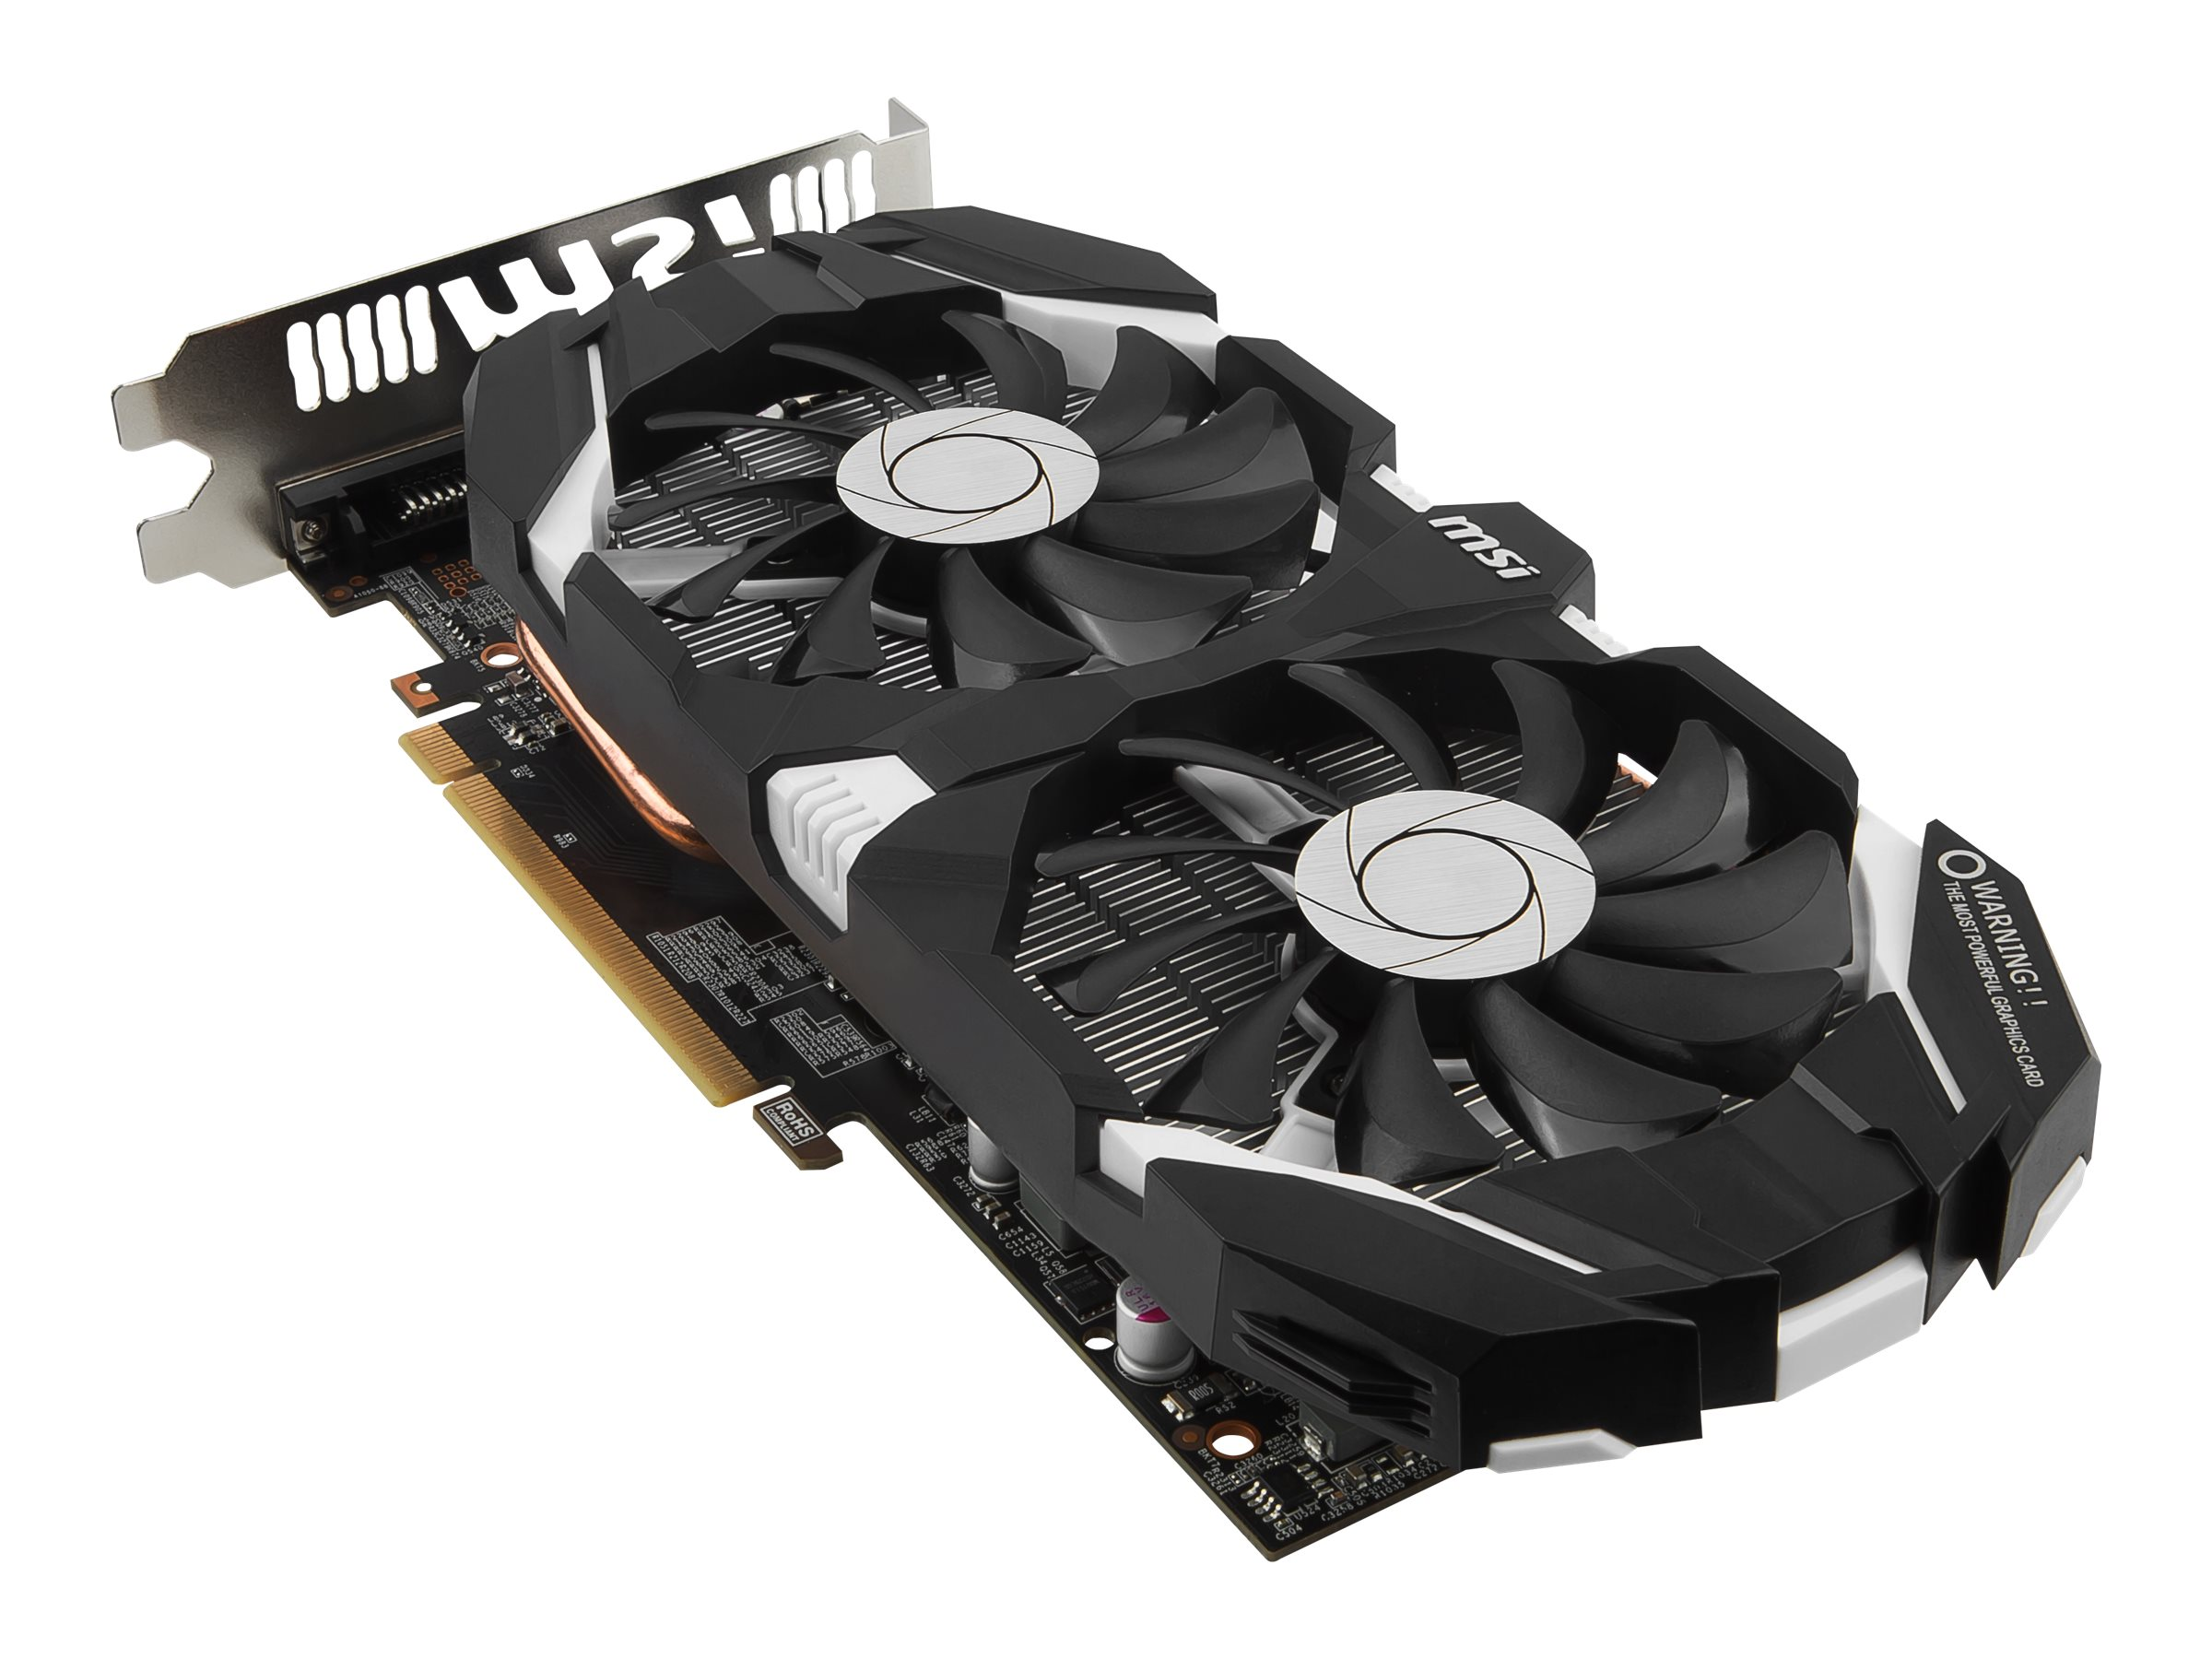 Microstar GeForce GTX 1060 PCIe Overclocked Graphics Card, 6GB GDDR5